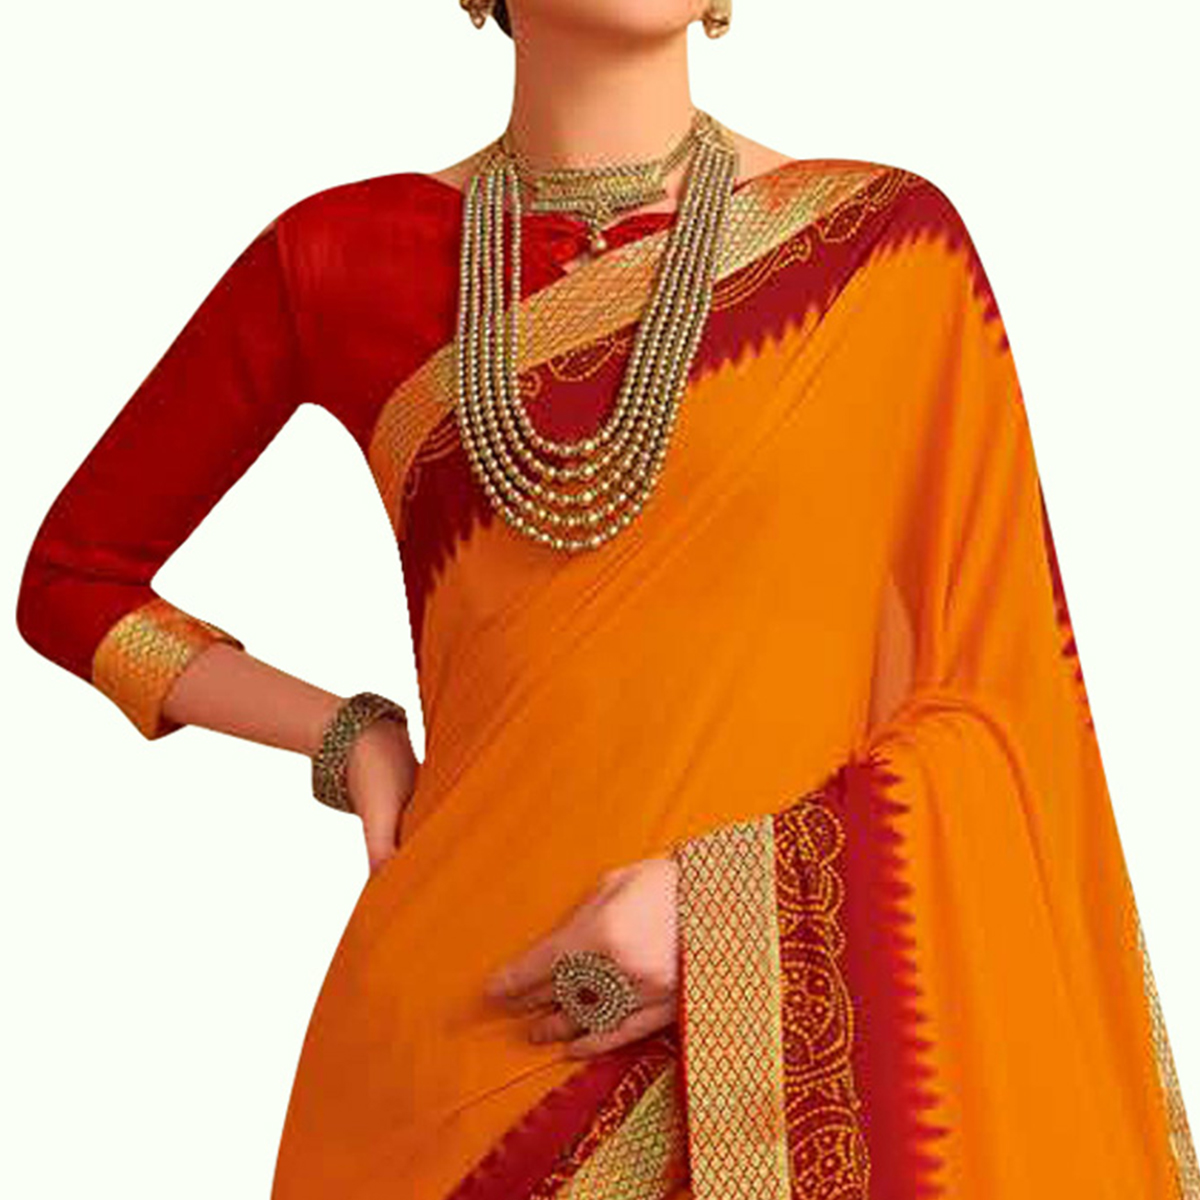 Blooming Orange Colored Bandhani Printed Heavy Georgette Saree With Jacquard Lace Border